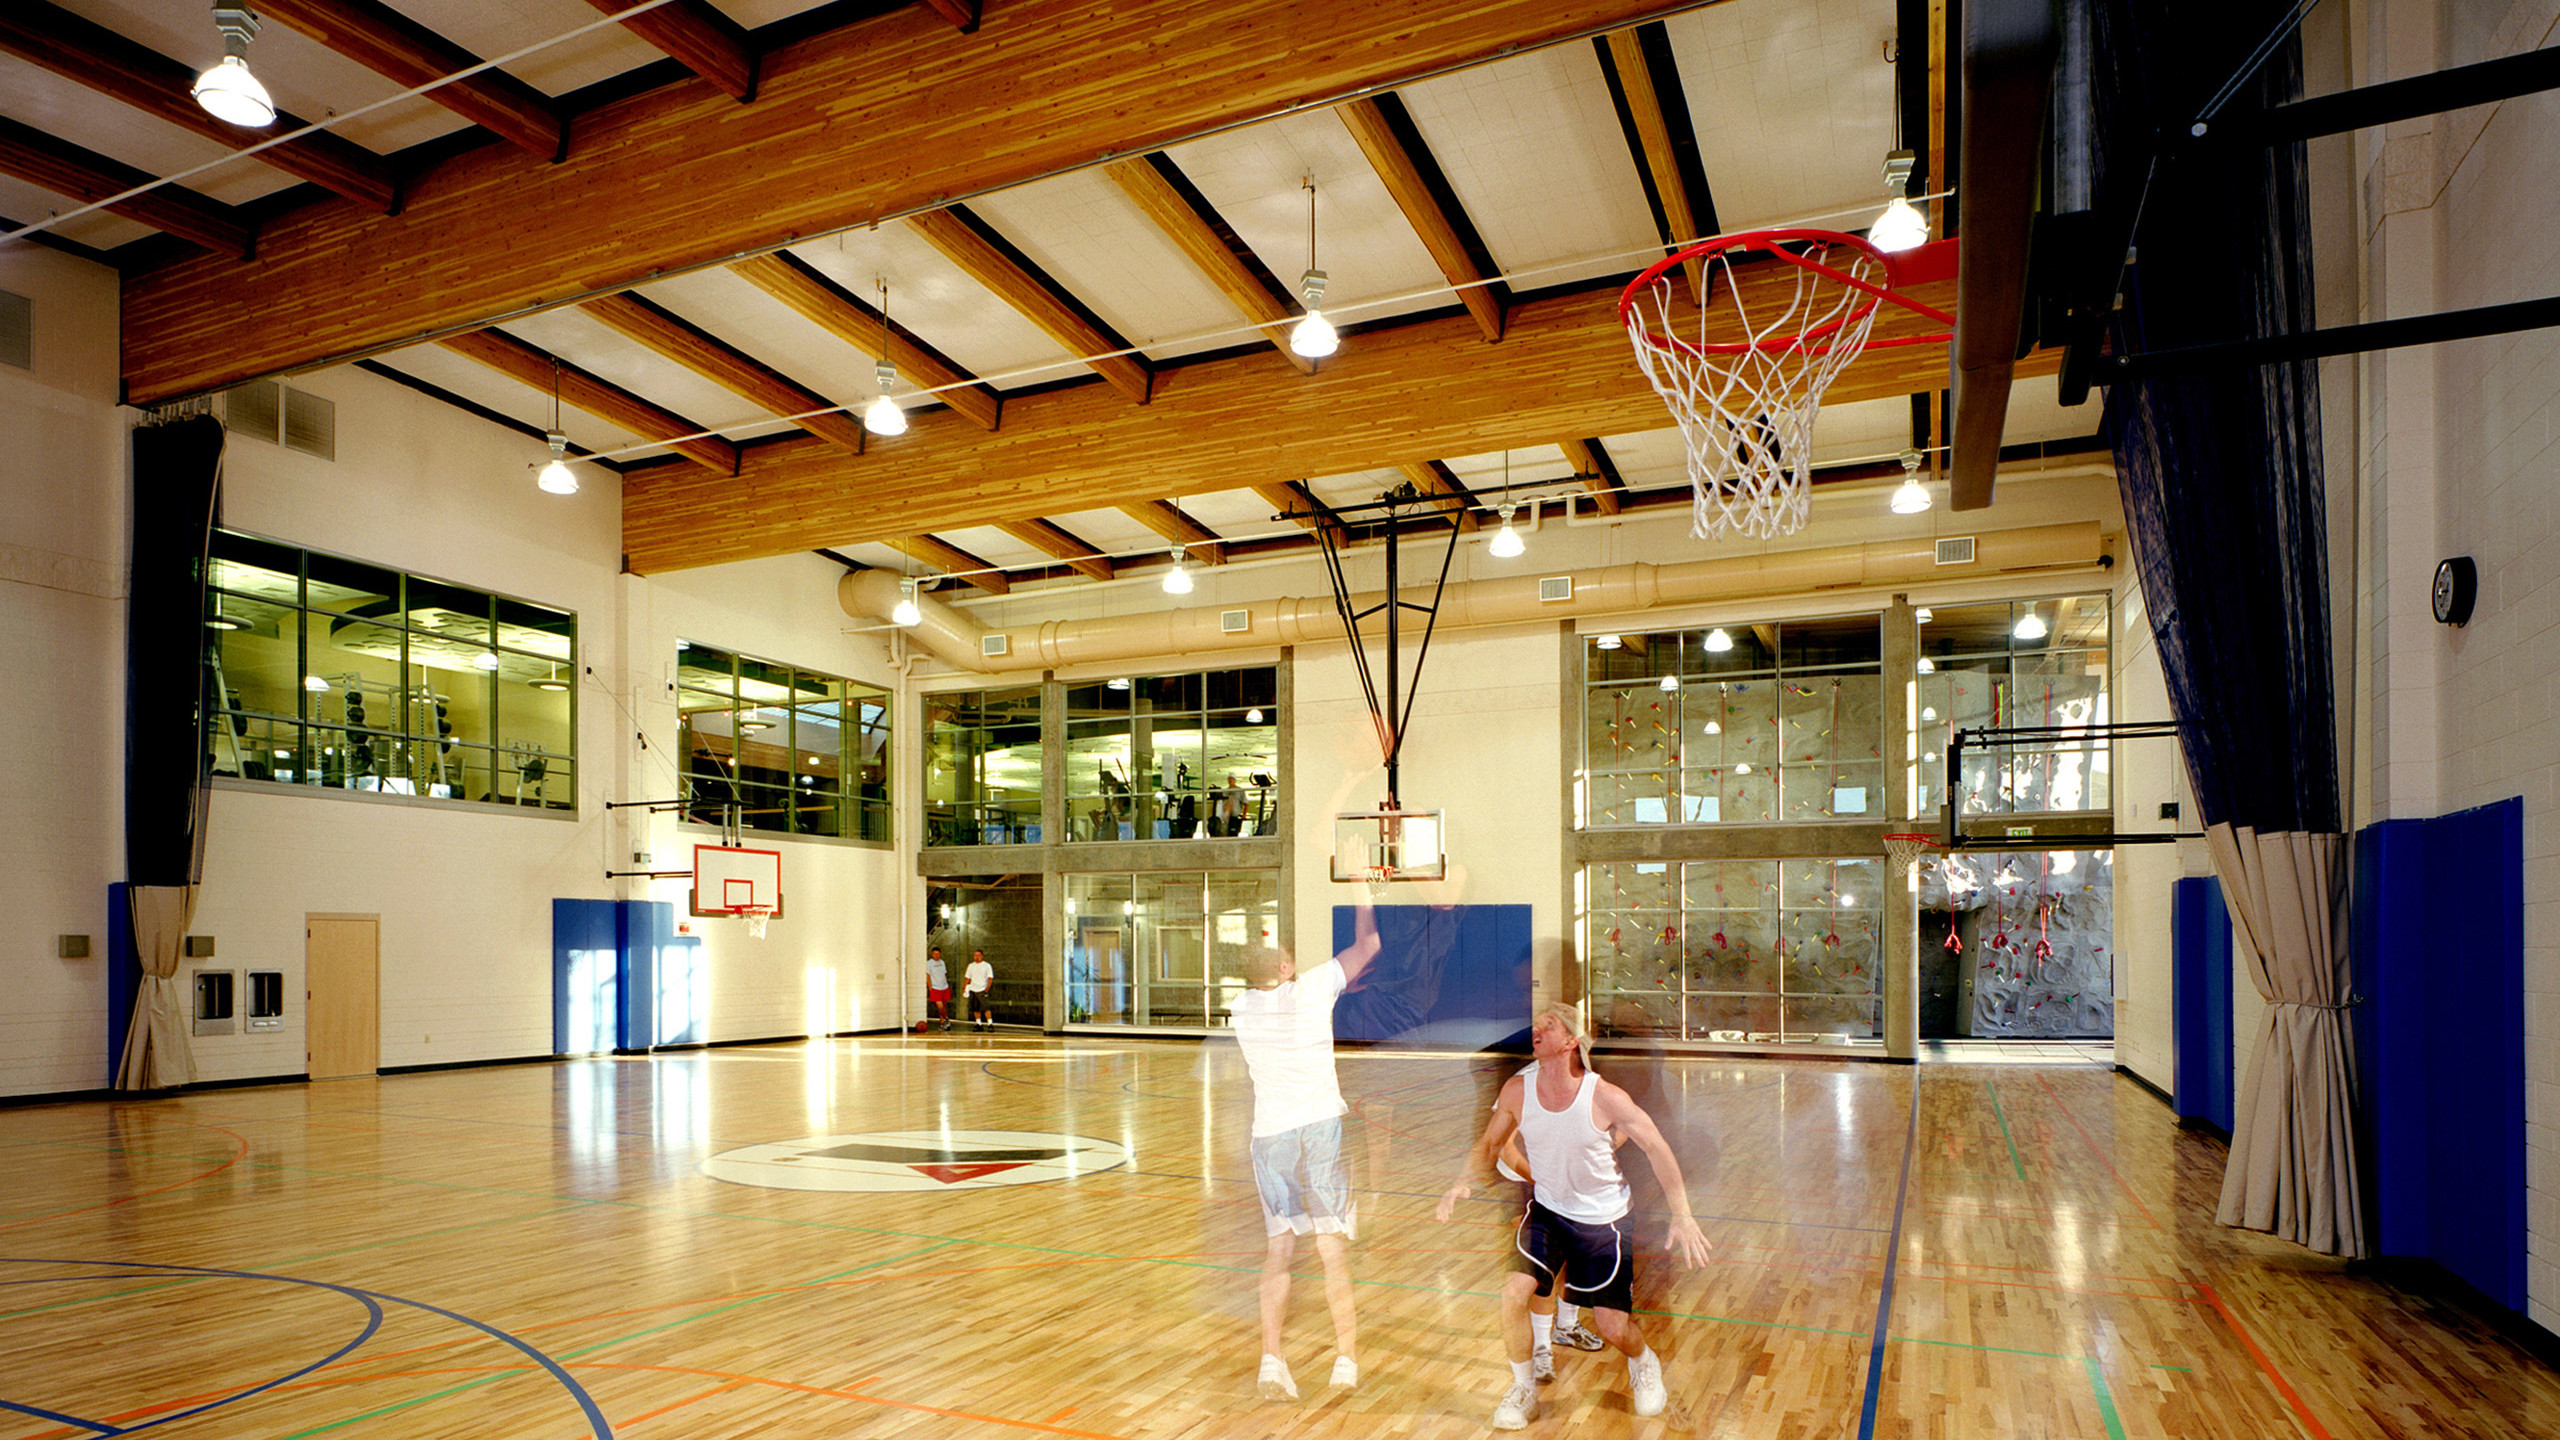 ALSC Architects YMCAValley Gym